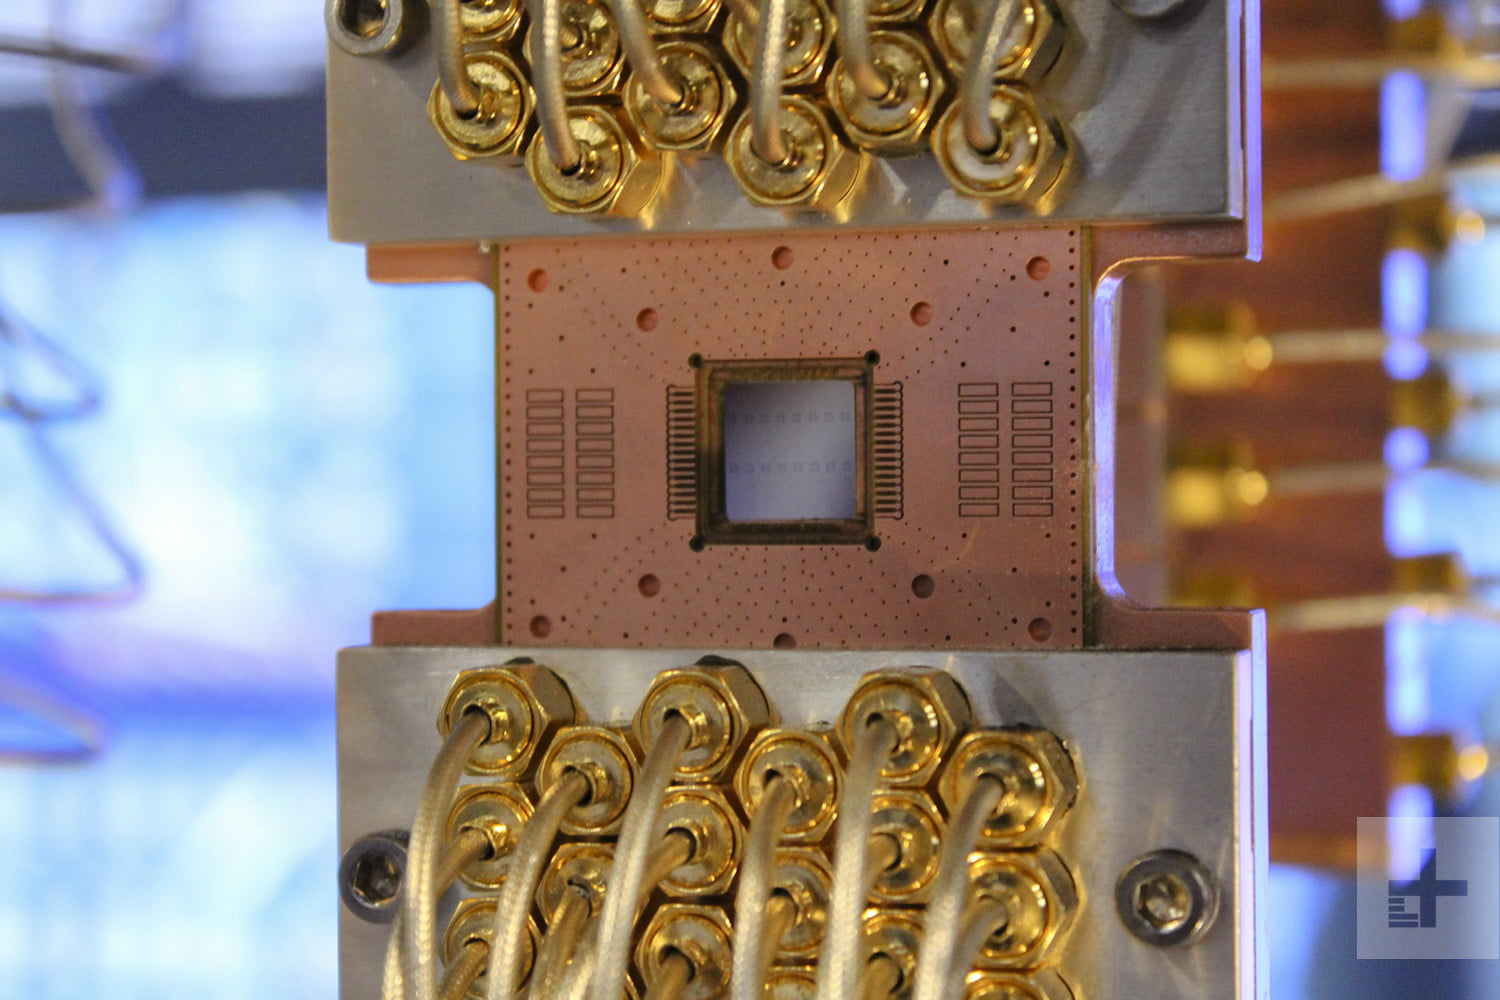 IBM Q brings the power of quantum computing to people who